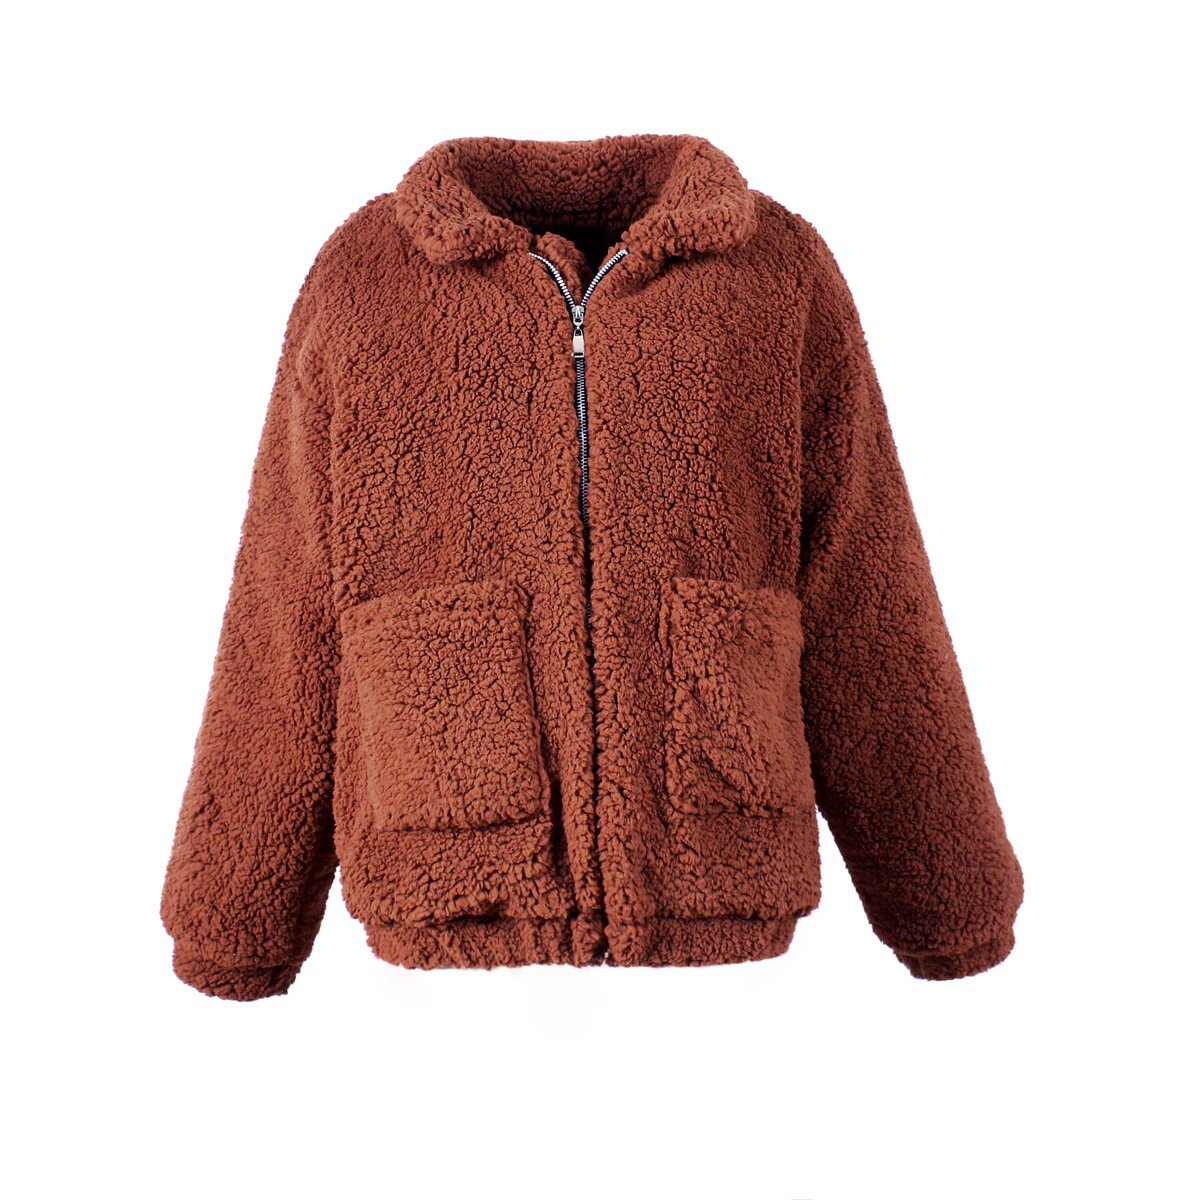 army khaki black Faux Lambswool Zipper Coat Jacket Autumn Plus camel 3xl Teddy Thicken purple Outerwear Colour Warm Begie pink red Winter Hairly Size Women 2018 Green qUTrRqdx